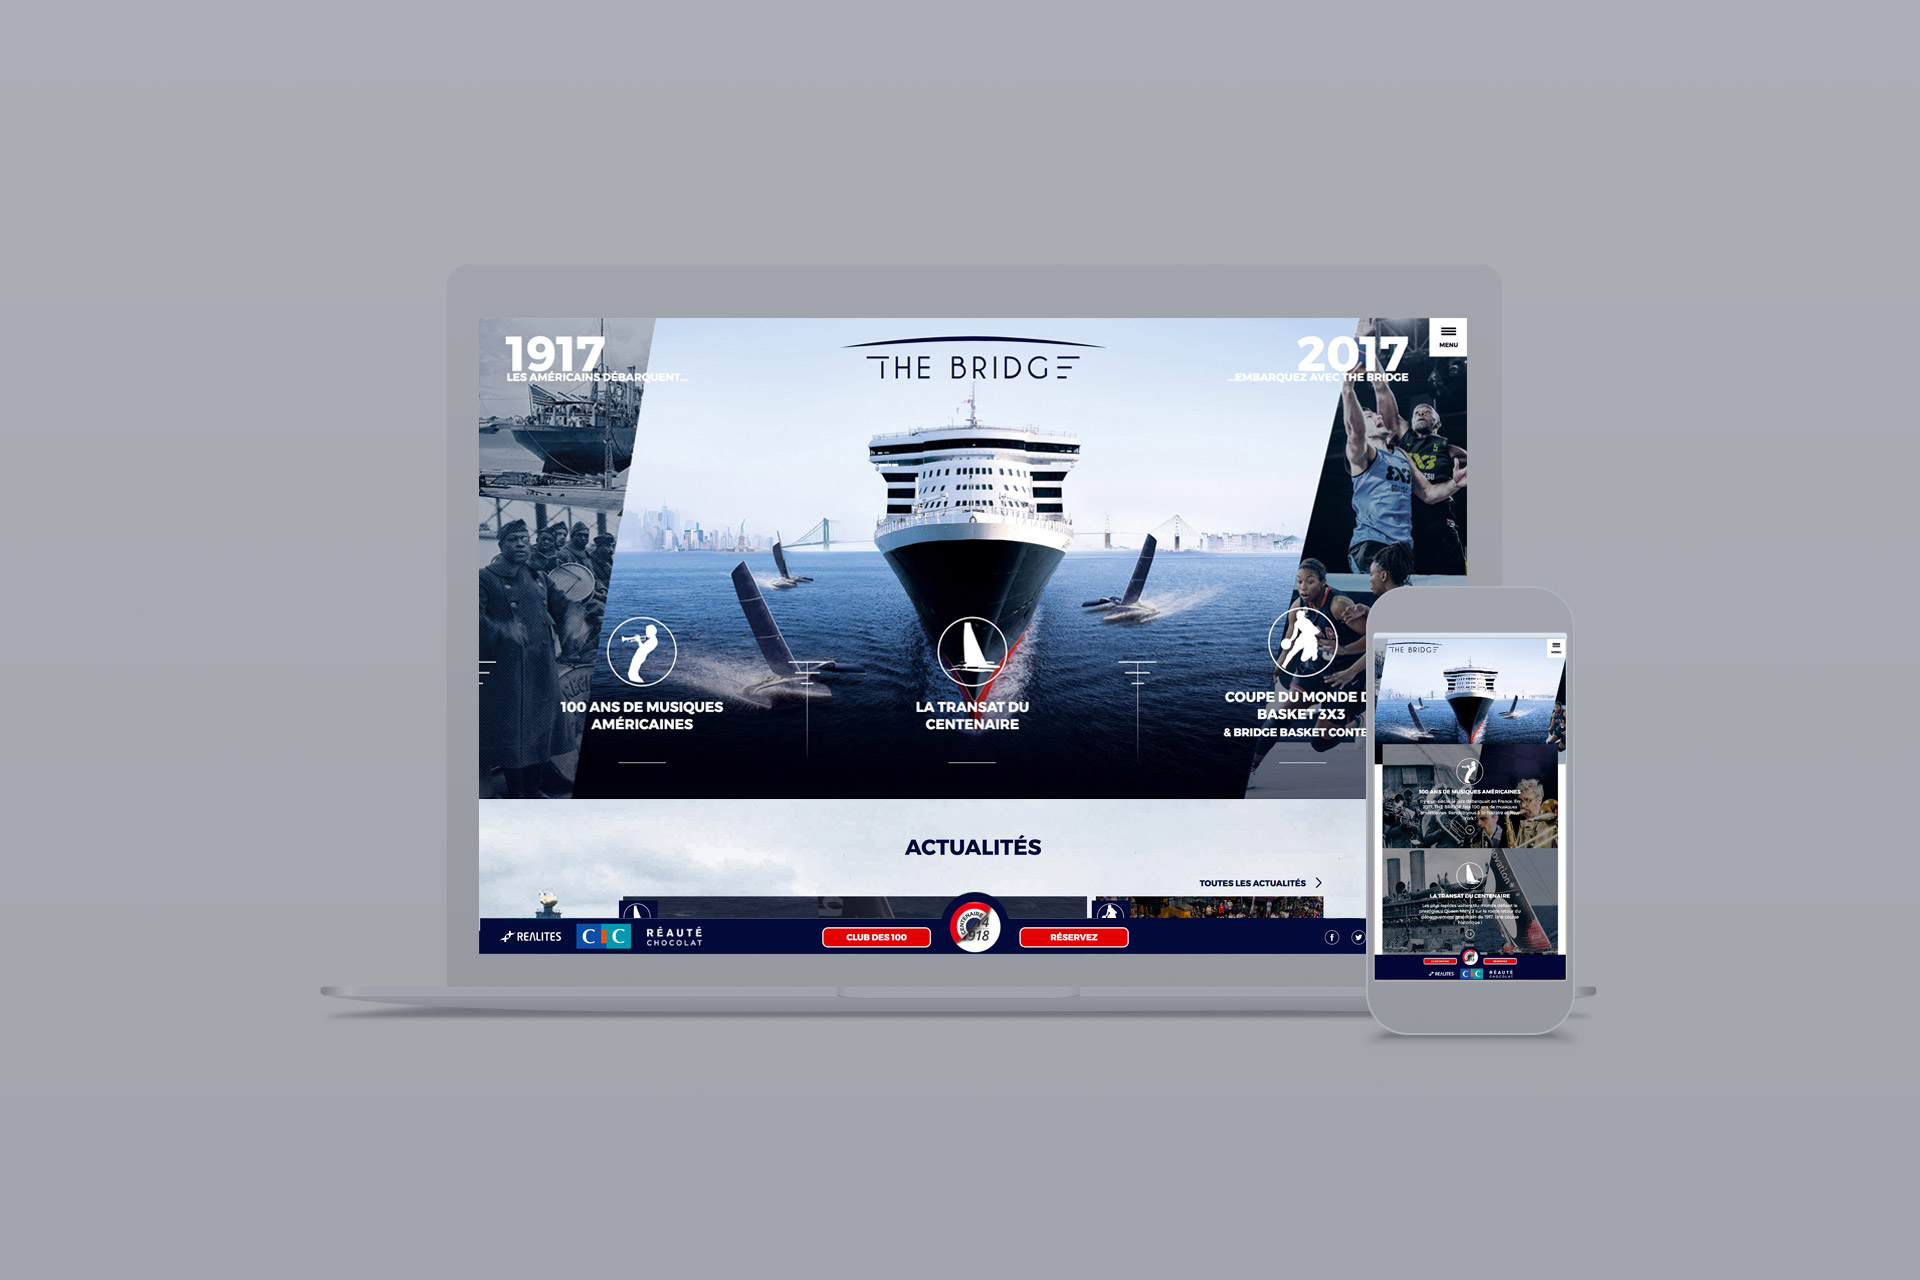 Webdesign du site internet de THE BRIDGE 2017 réalisé par l'agence logo